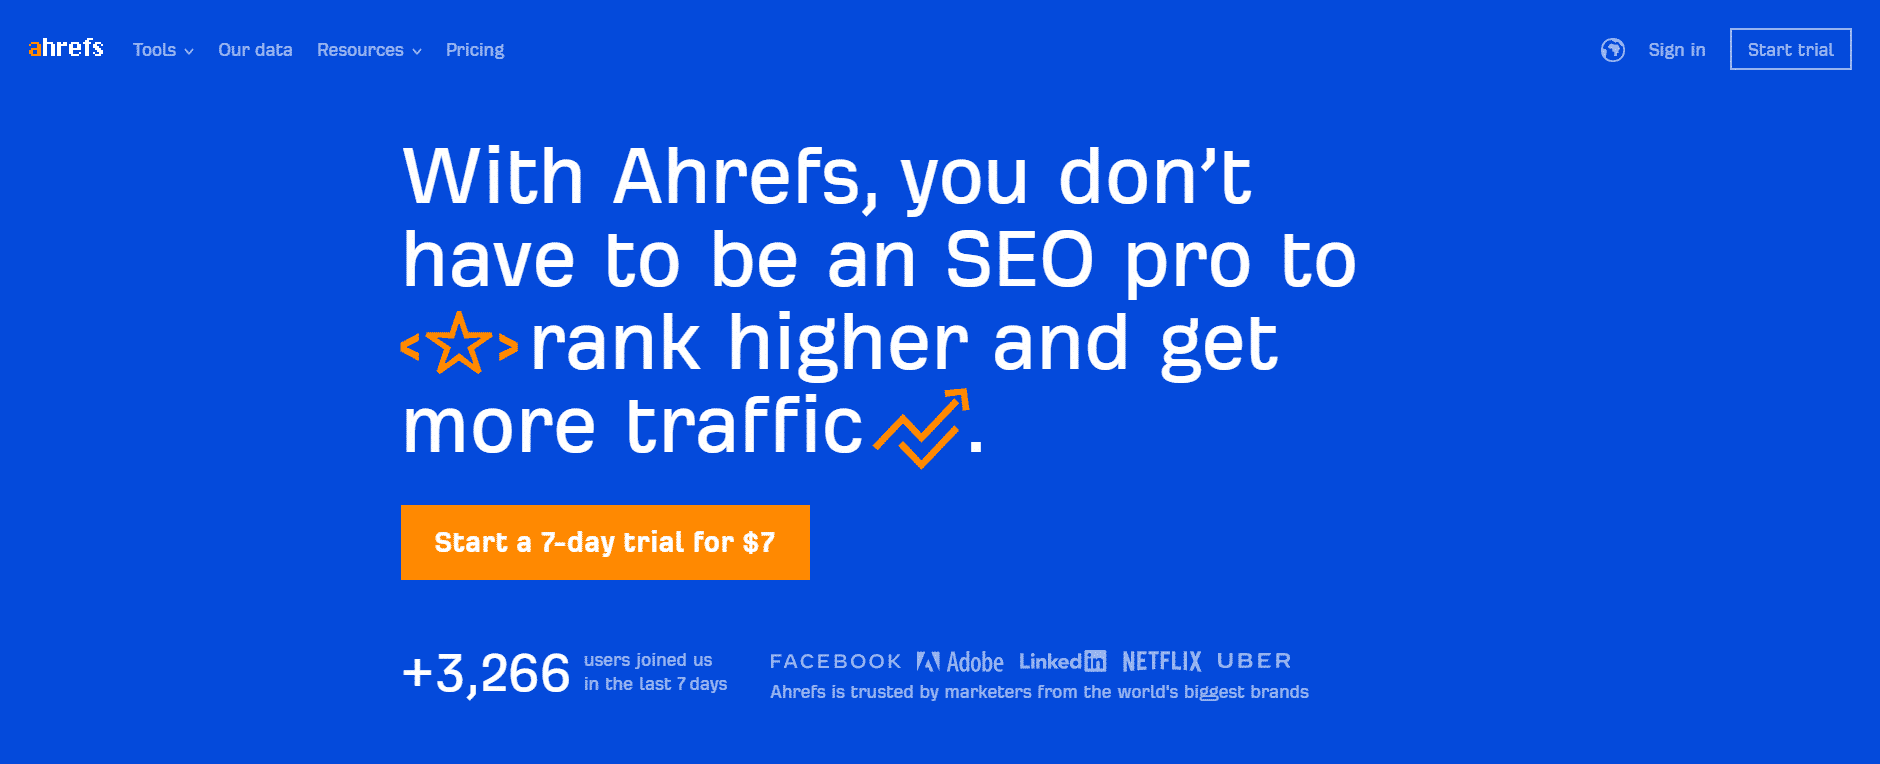 Ahrefs Trial for 7 days